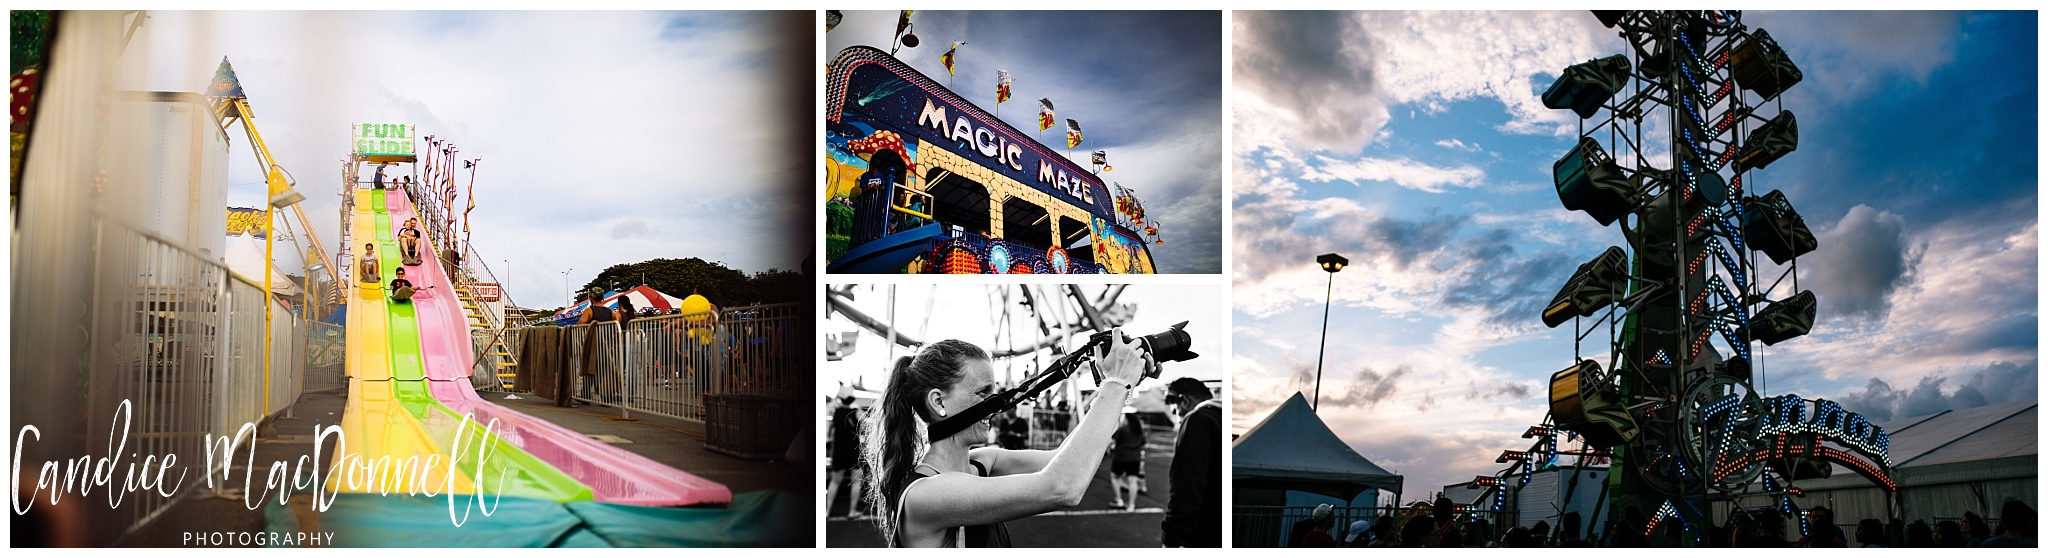 Candice MacDonnell Photography - Hawaii State Fair